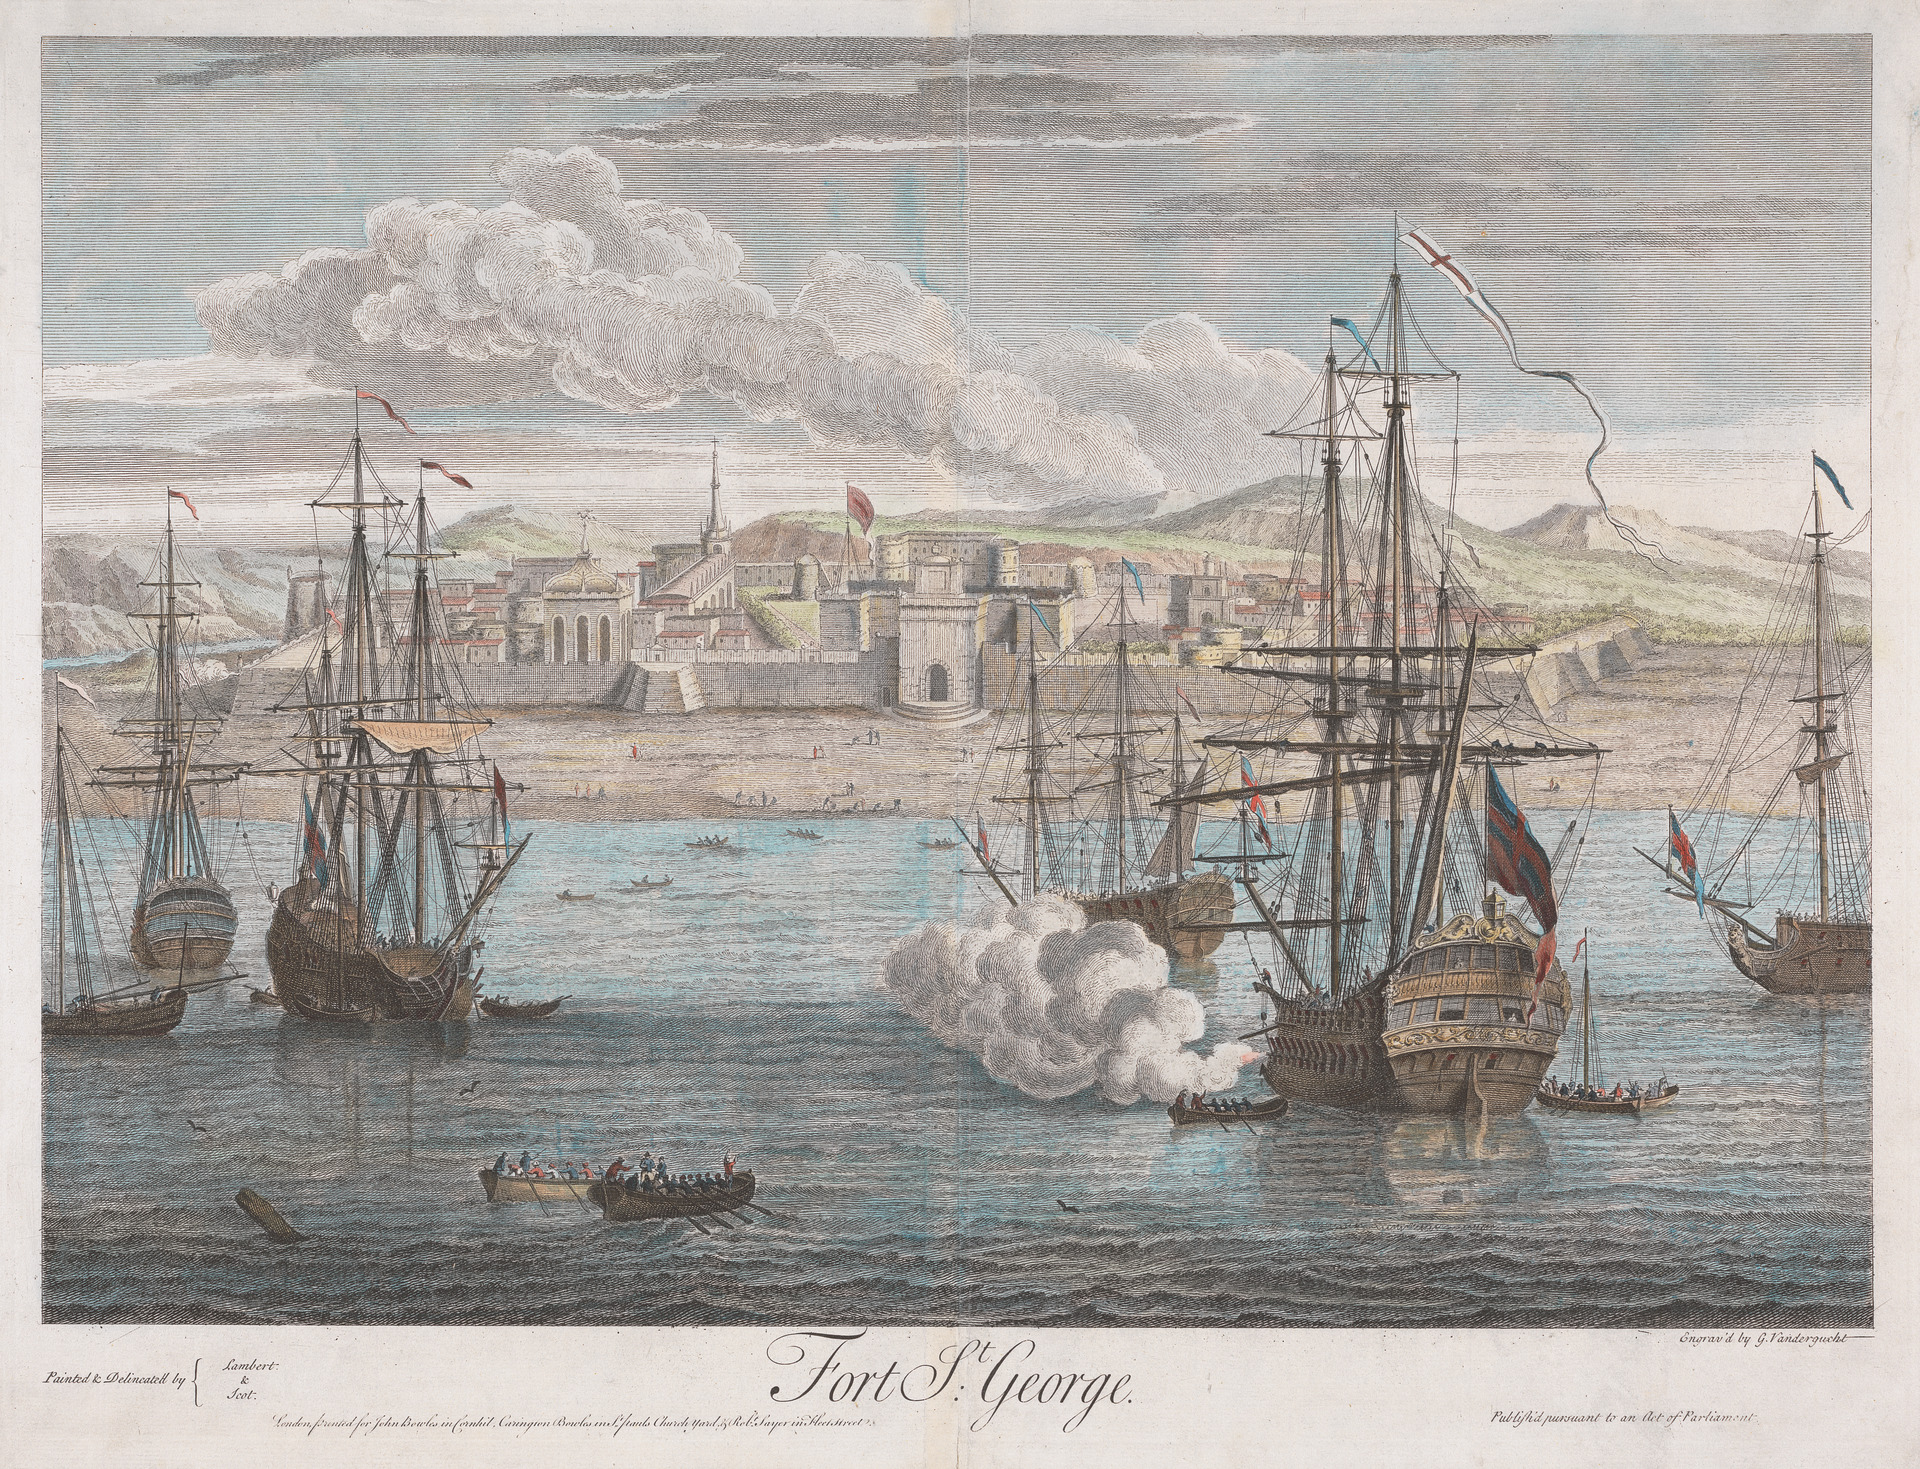 Gerard van der Gucht, Fort St. George, 1736, line engraving with hand coloring in watercolor on paper, Yale Center for British Art, Paul Mellon Collection